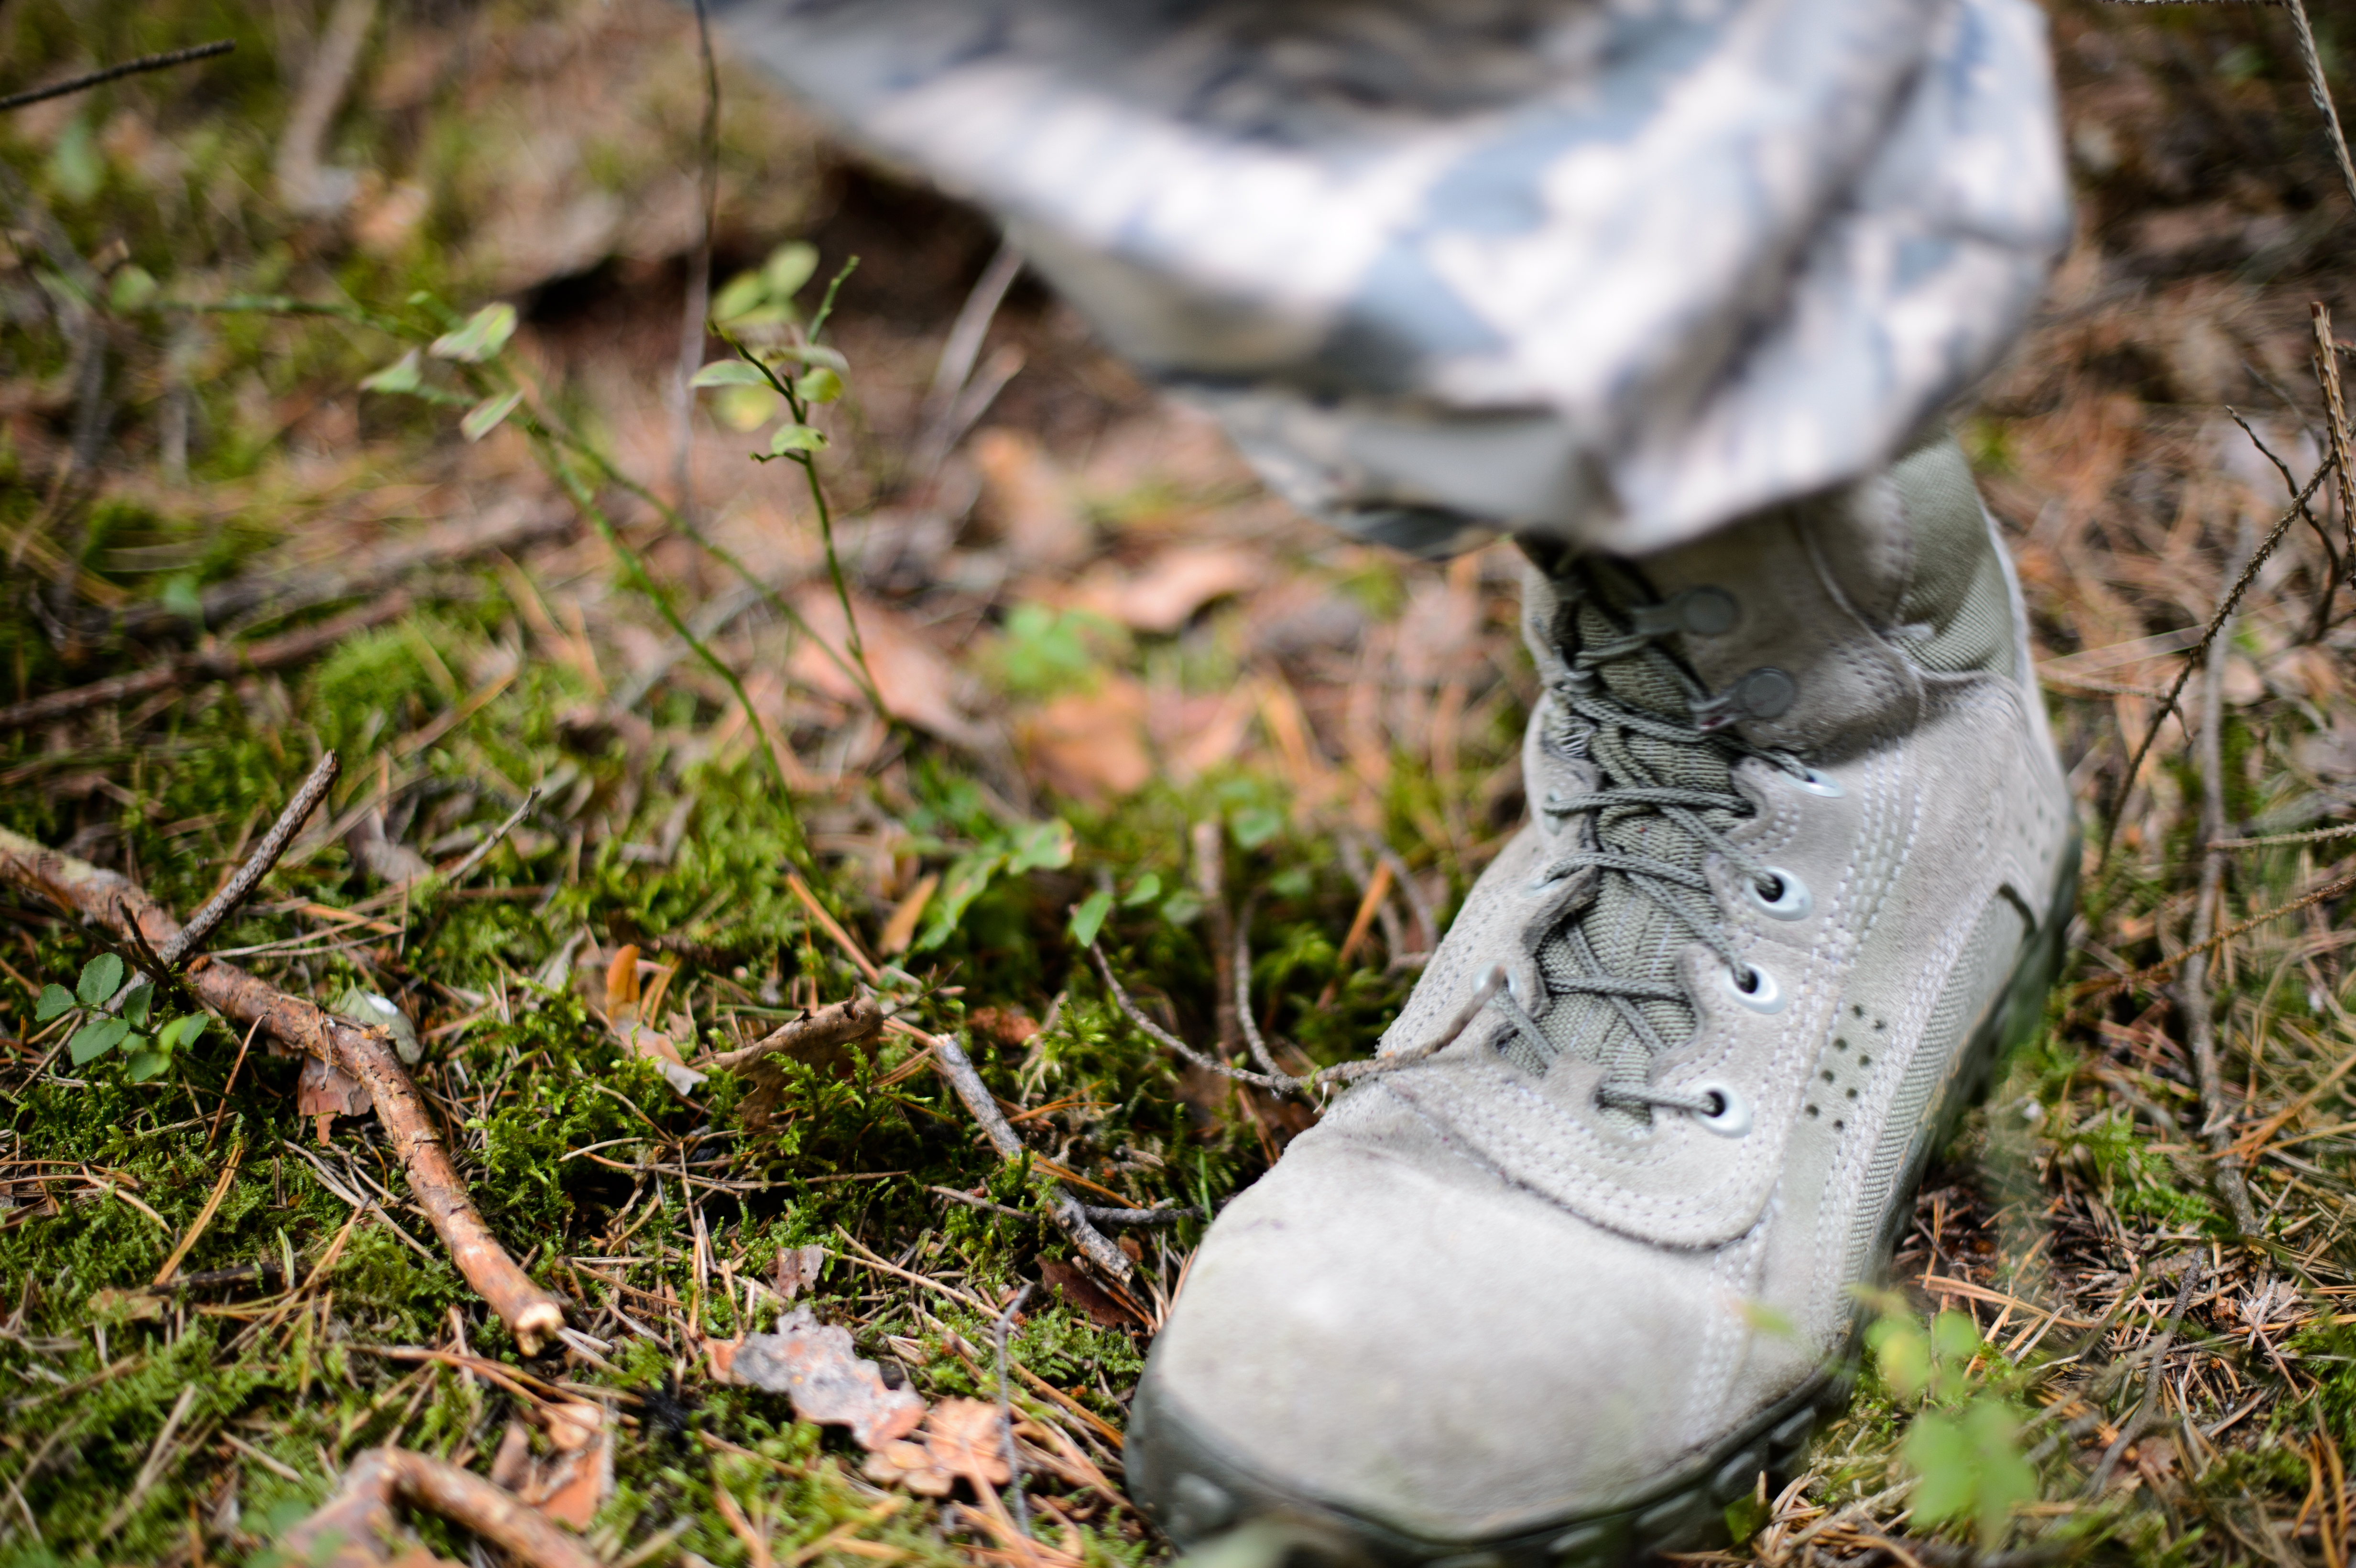 Cadre Focus primes Airmen with Army embed skills